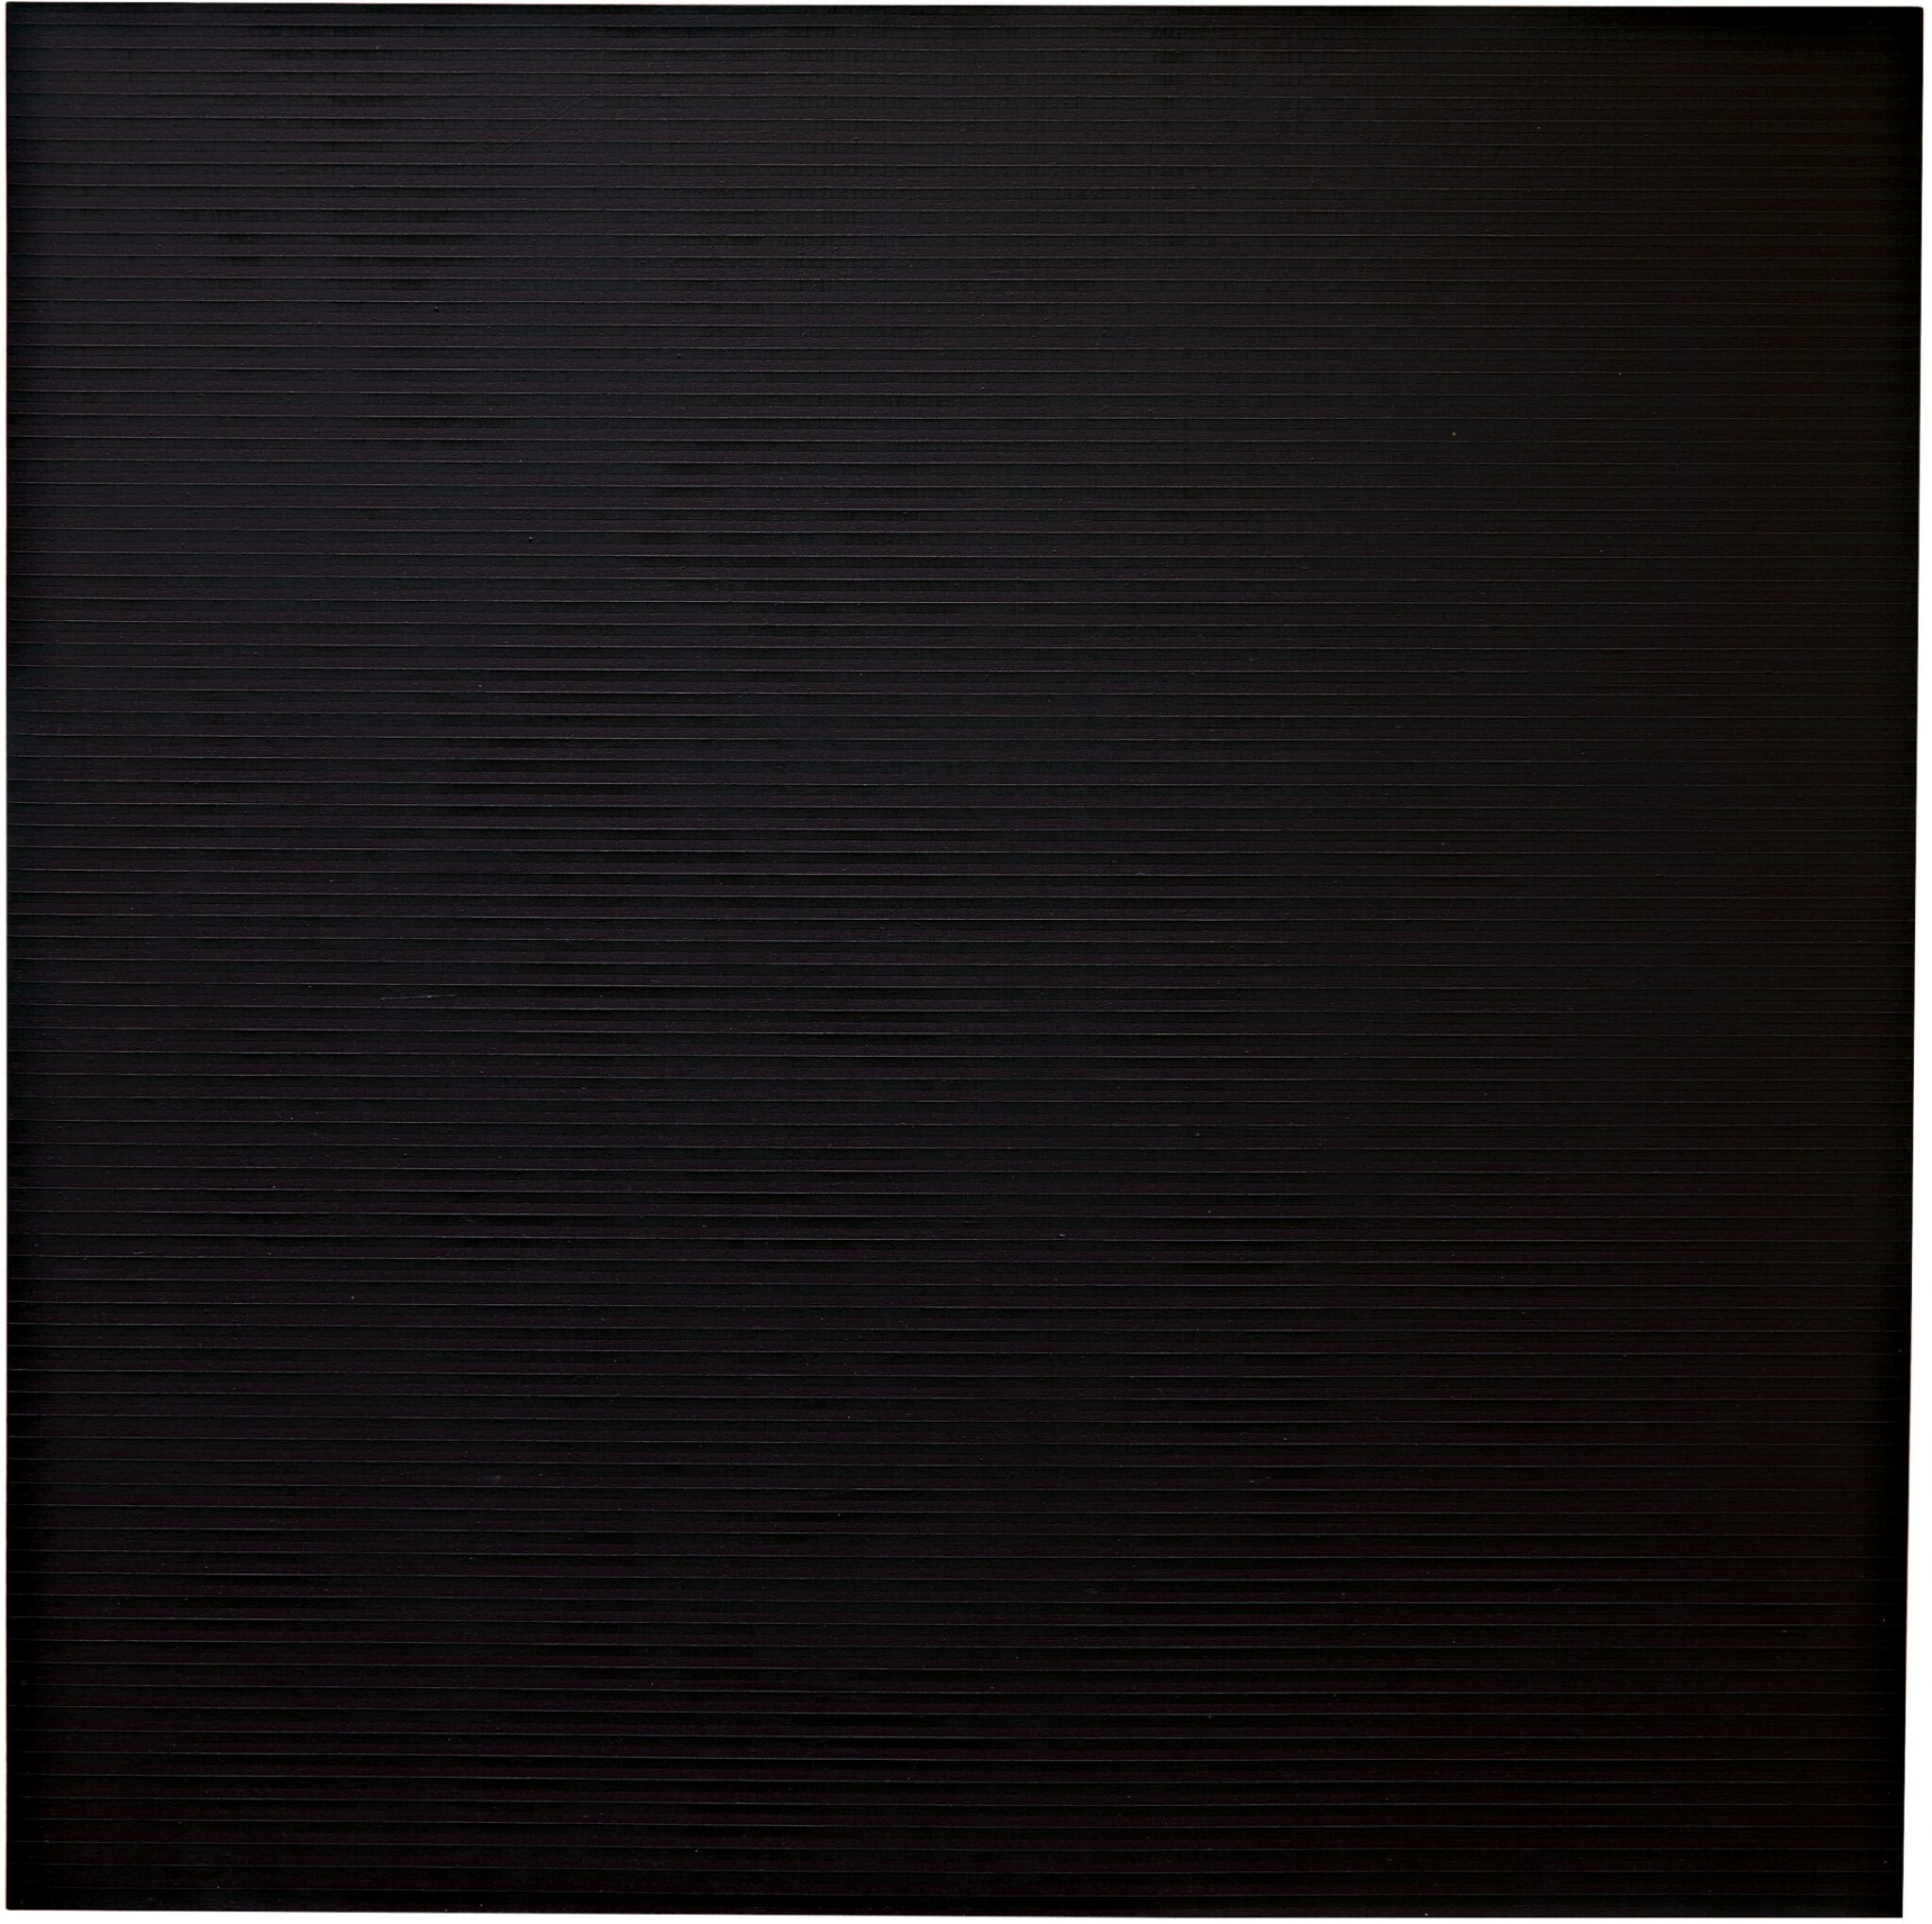 View 1 of Lot 214. SEAN SCULLY | HORIZONTAL-VERTICAL.